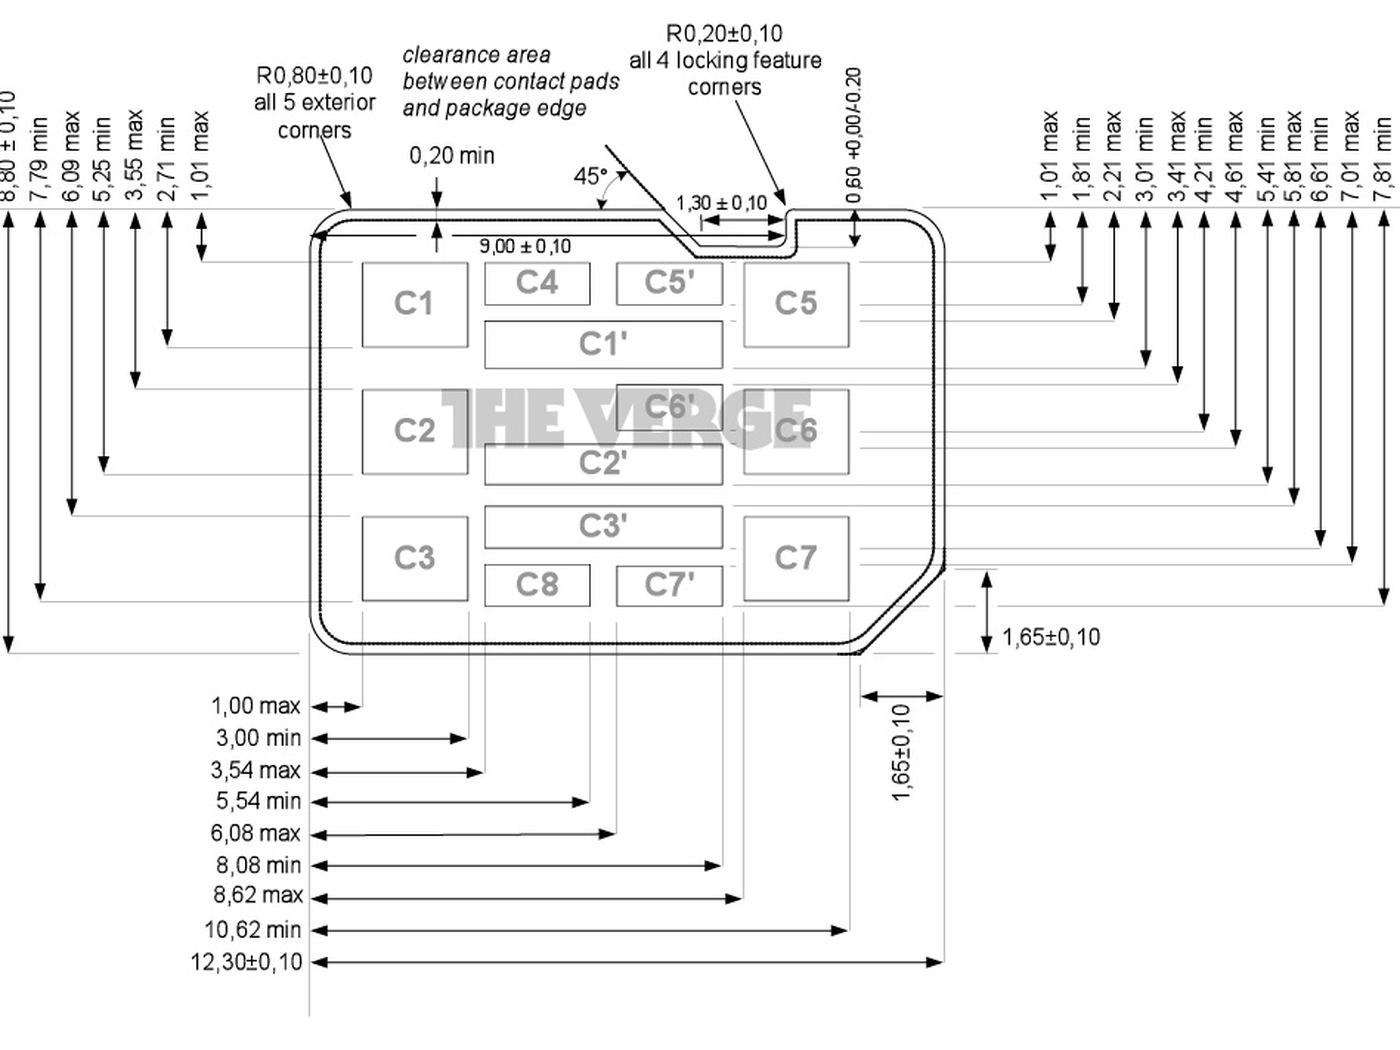 Rim Motorola Told Apple They Could Find A Nano Sim Compromise Here Circuit Diagram Of Nokia C2 01 It Is The Verge